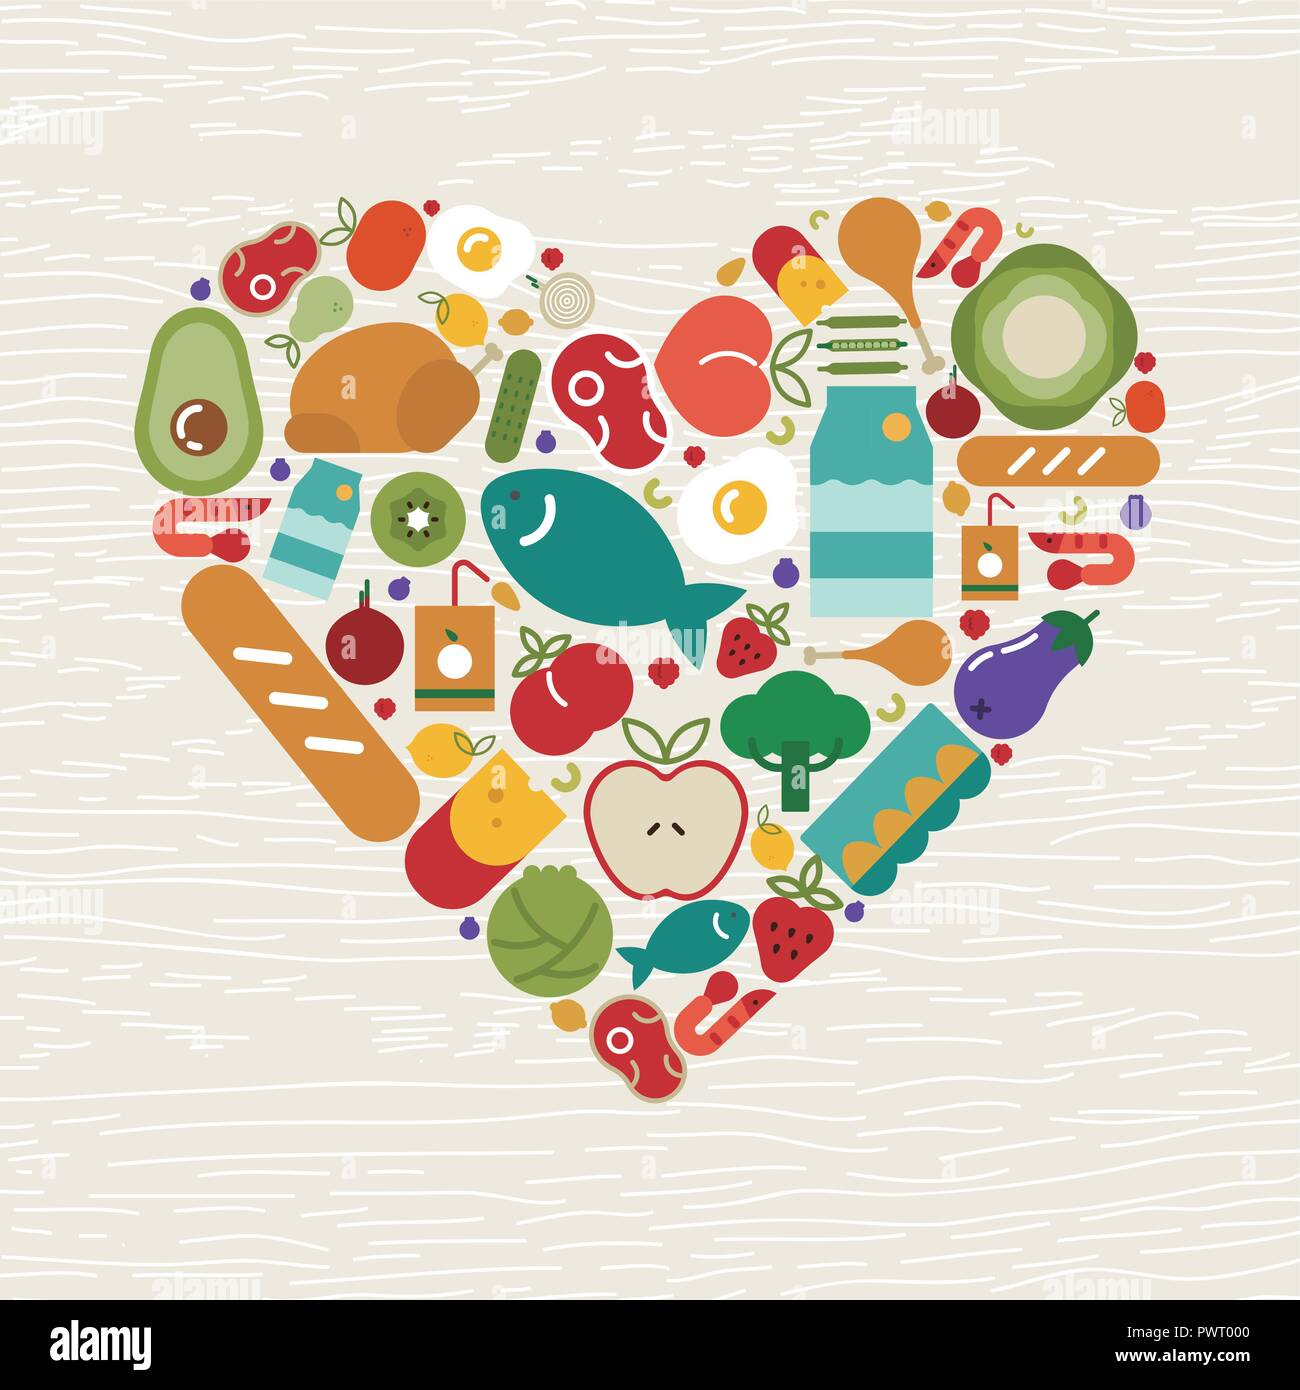 Food Icons Making Heart Shape For Healthy Eating Or Balanced Nutrition Concept Includes Fruit Vegetables Meat Bread And Dairy Stock Vector Image Art Alamy